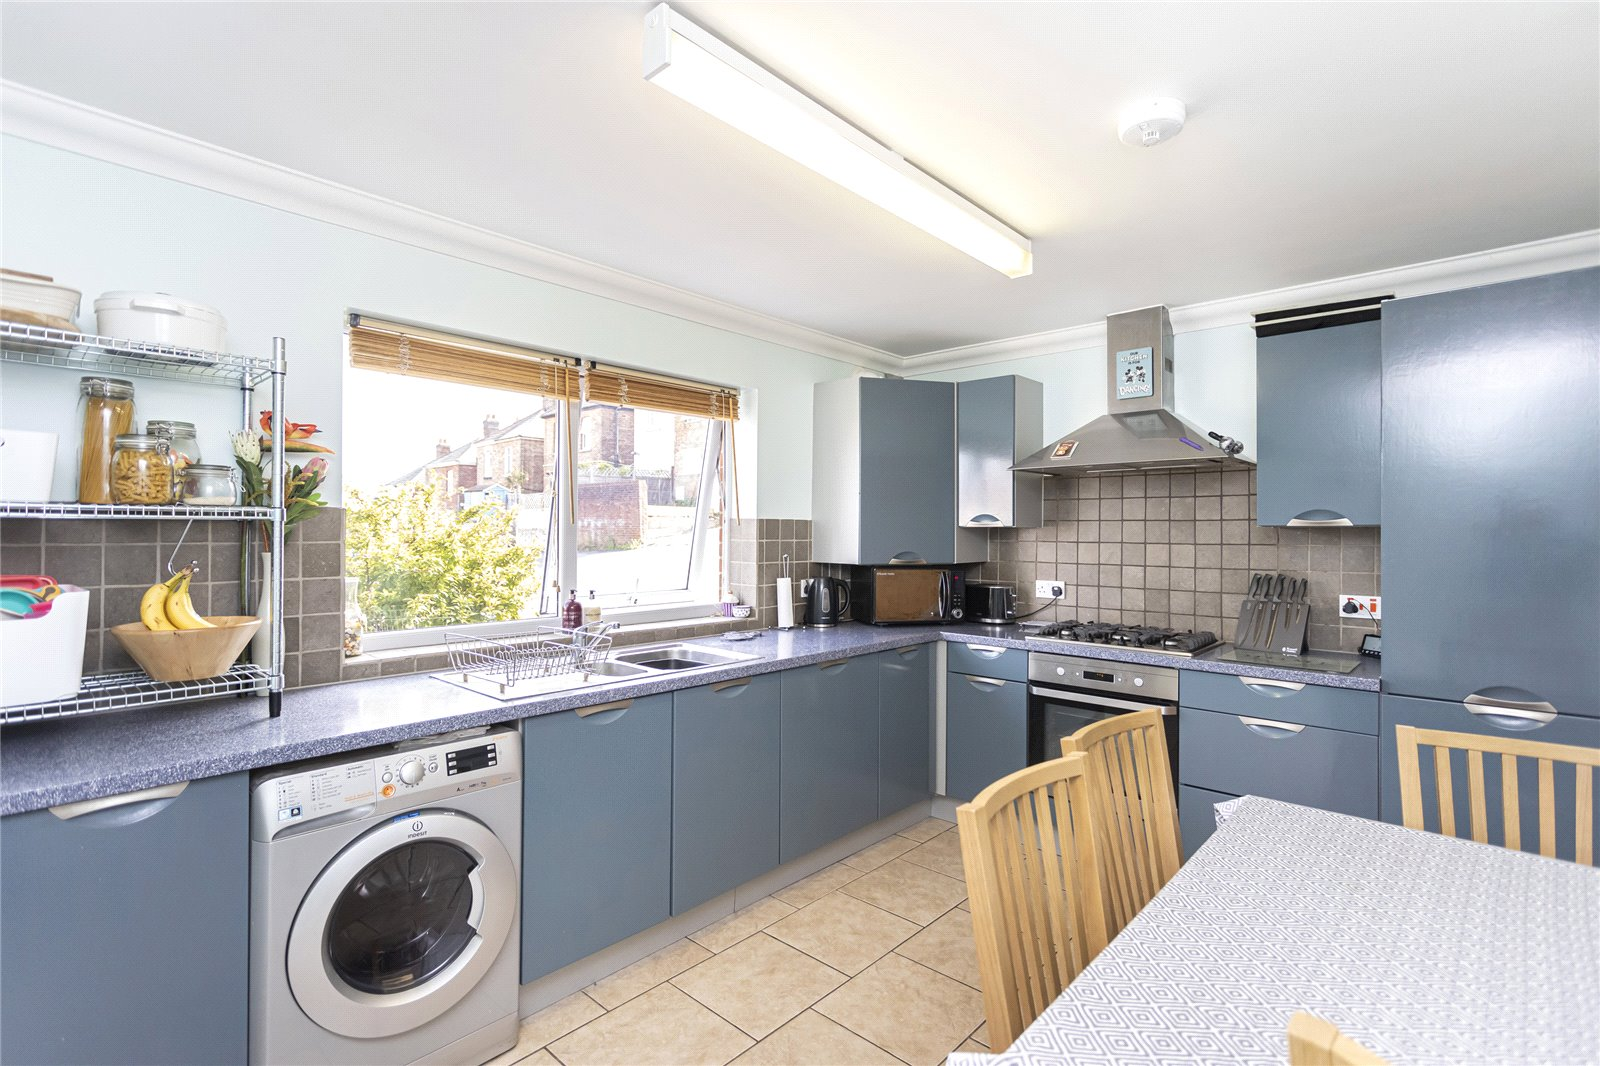 3 bed house for sale in Douglas Road, Branksome  - Property Image 1